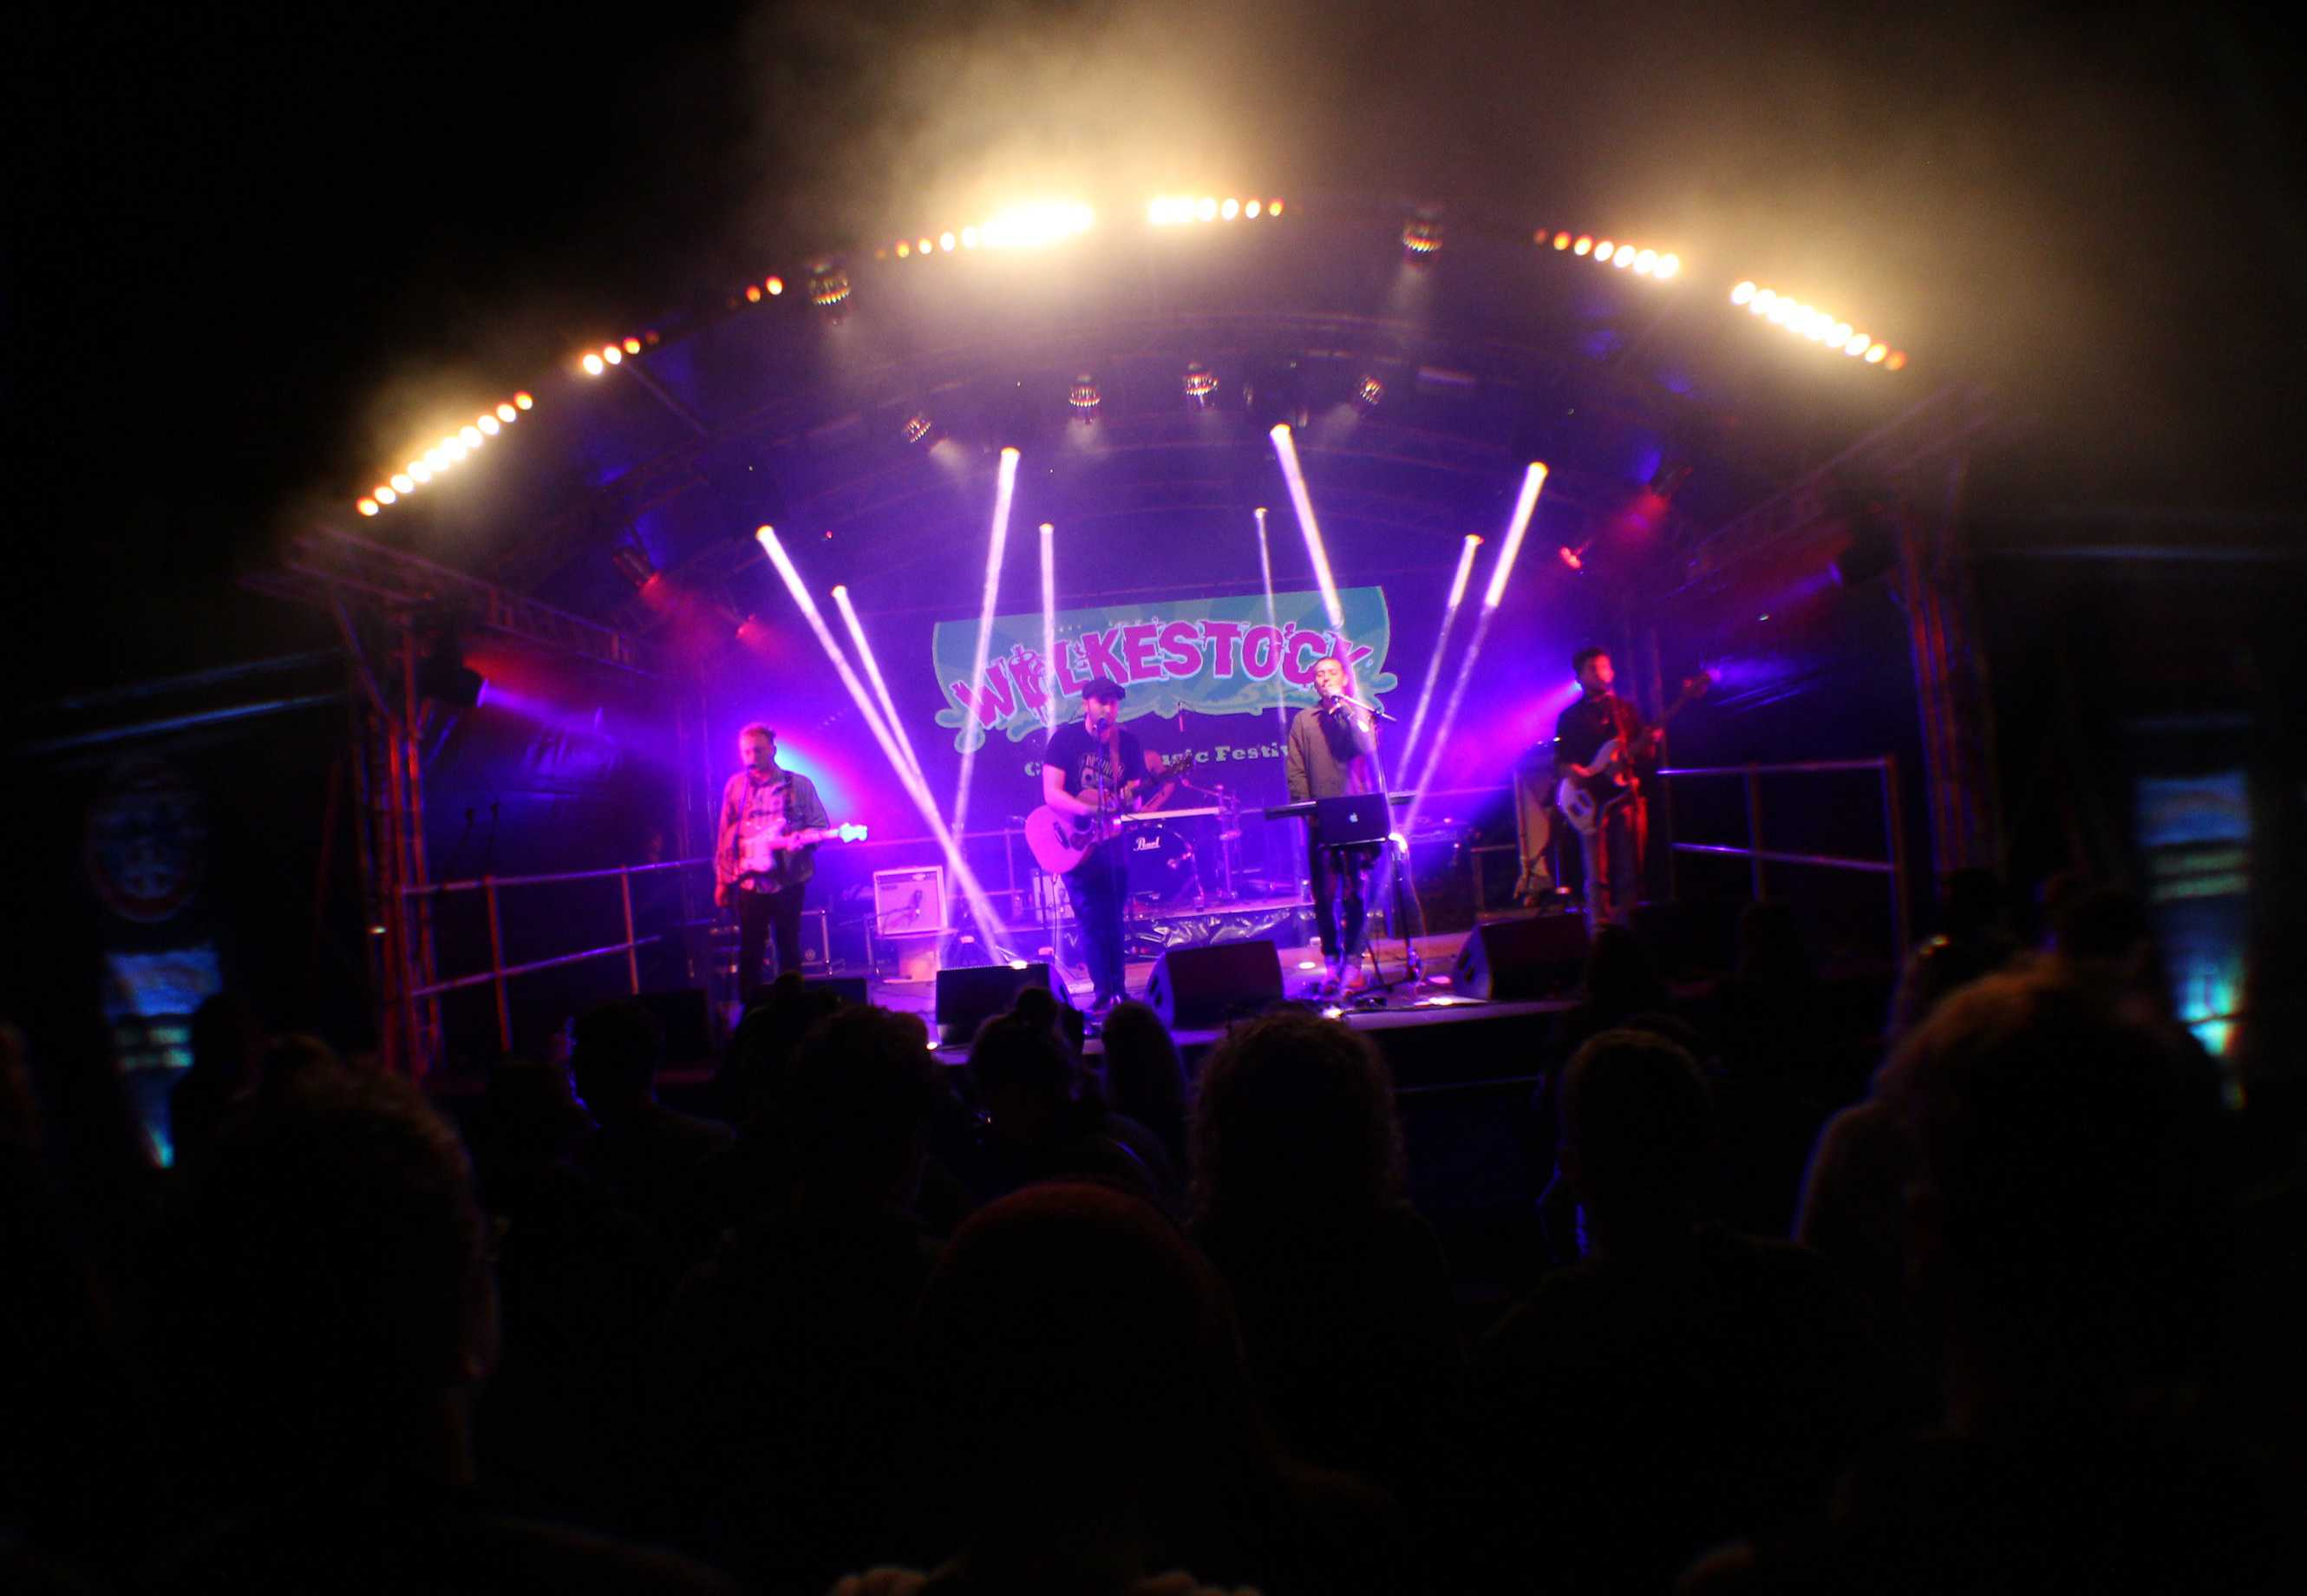 Wilkestock festival 2014 Vortex Events